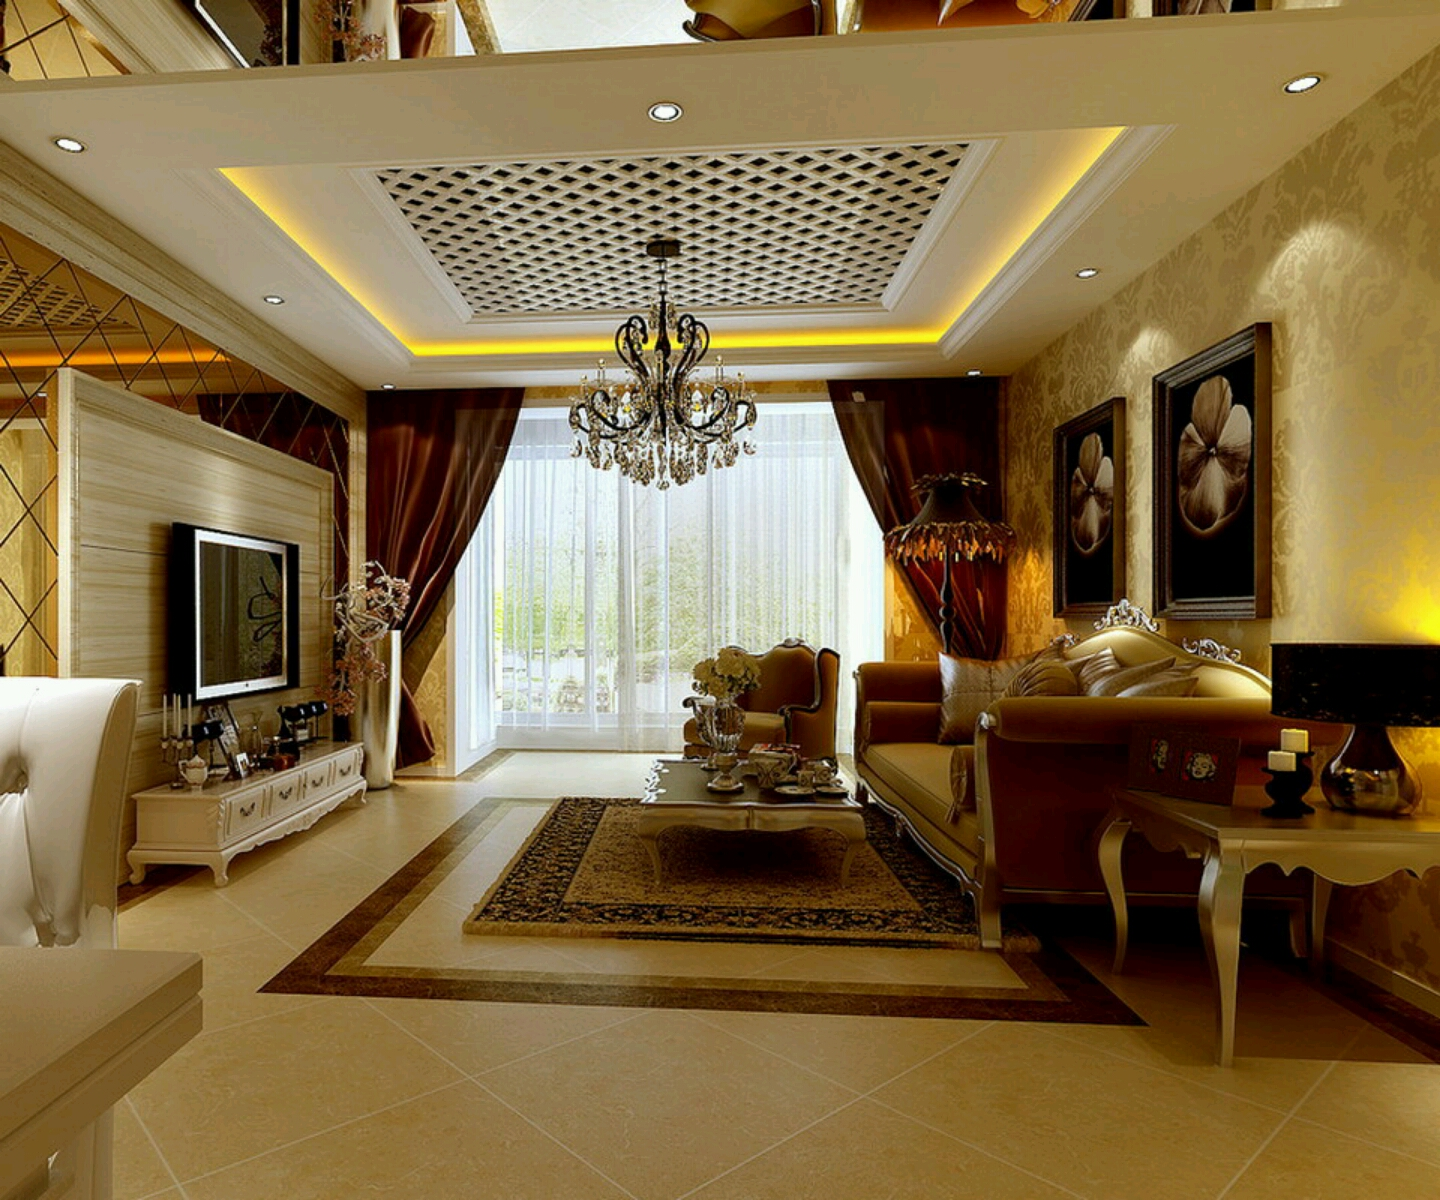 New home designs latest luxury homes interior decoration for Images of living room designs